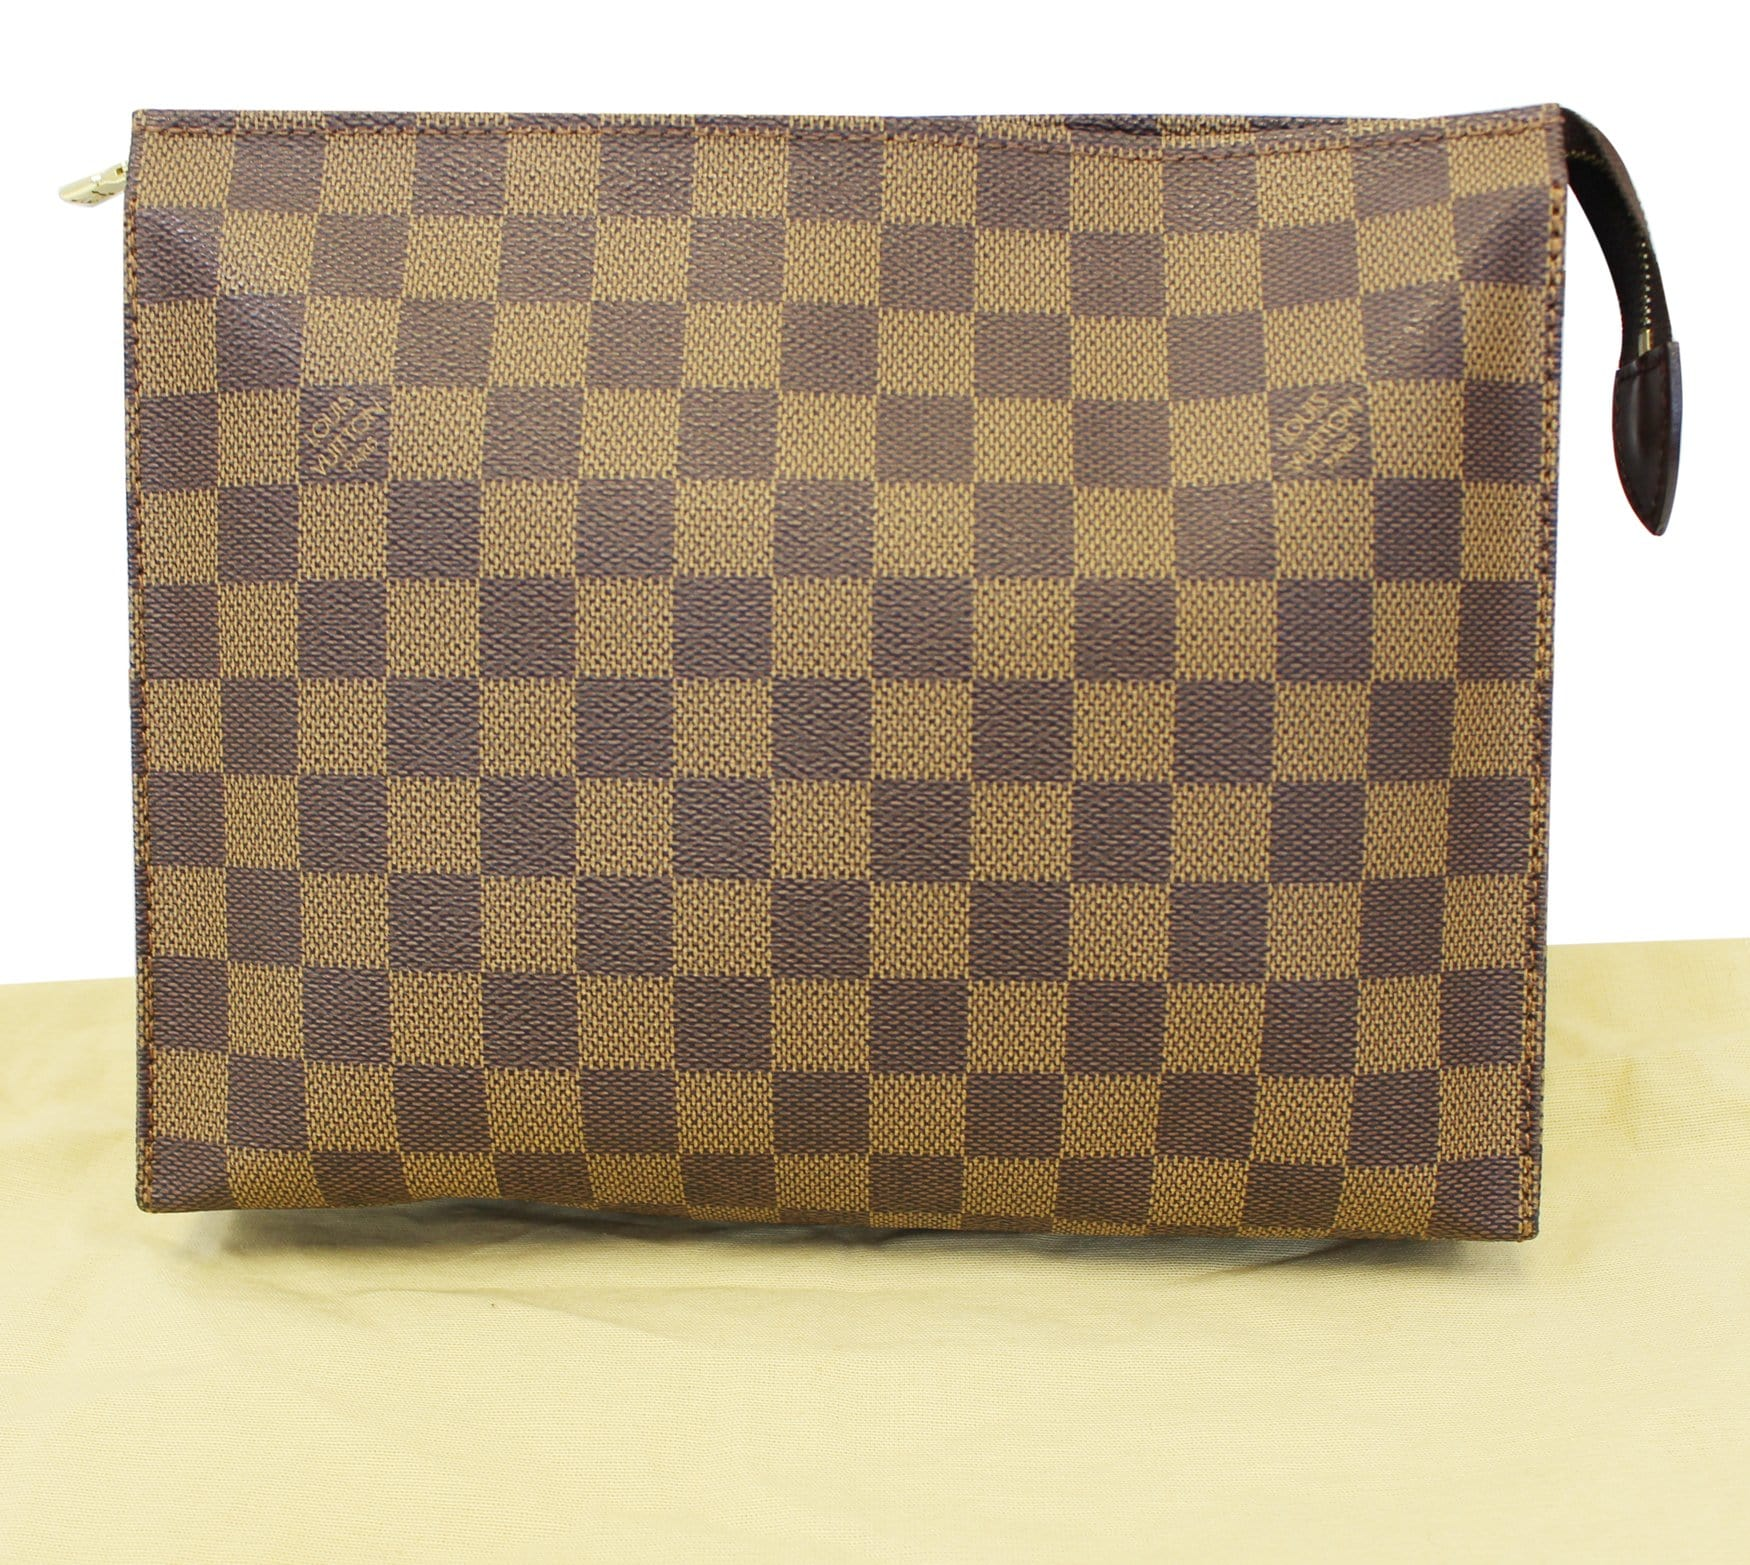 1dcfdd26c3a9 Louis Vuitton Lv man bag icare document bag Damier graphite